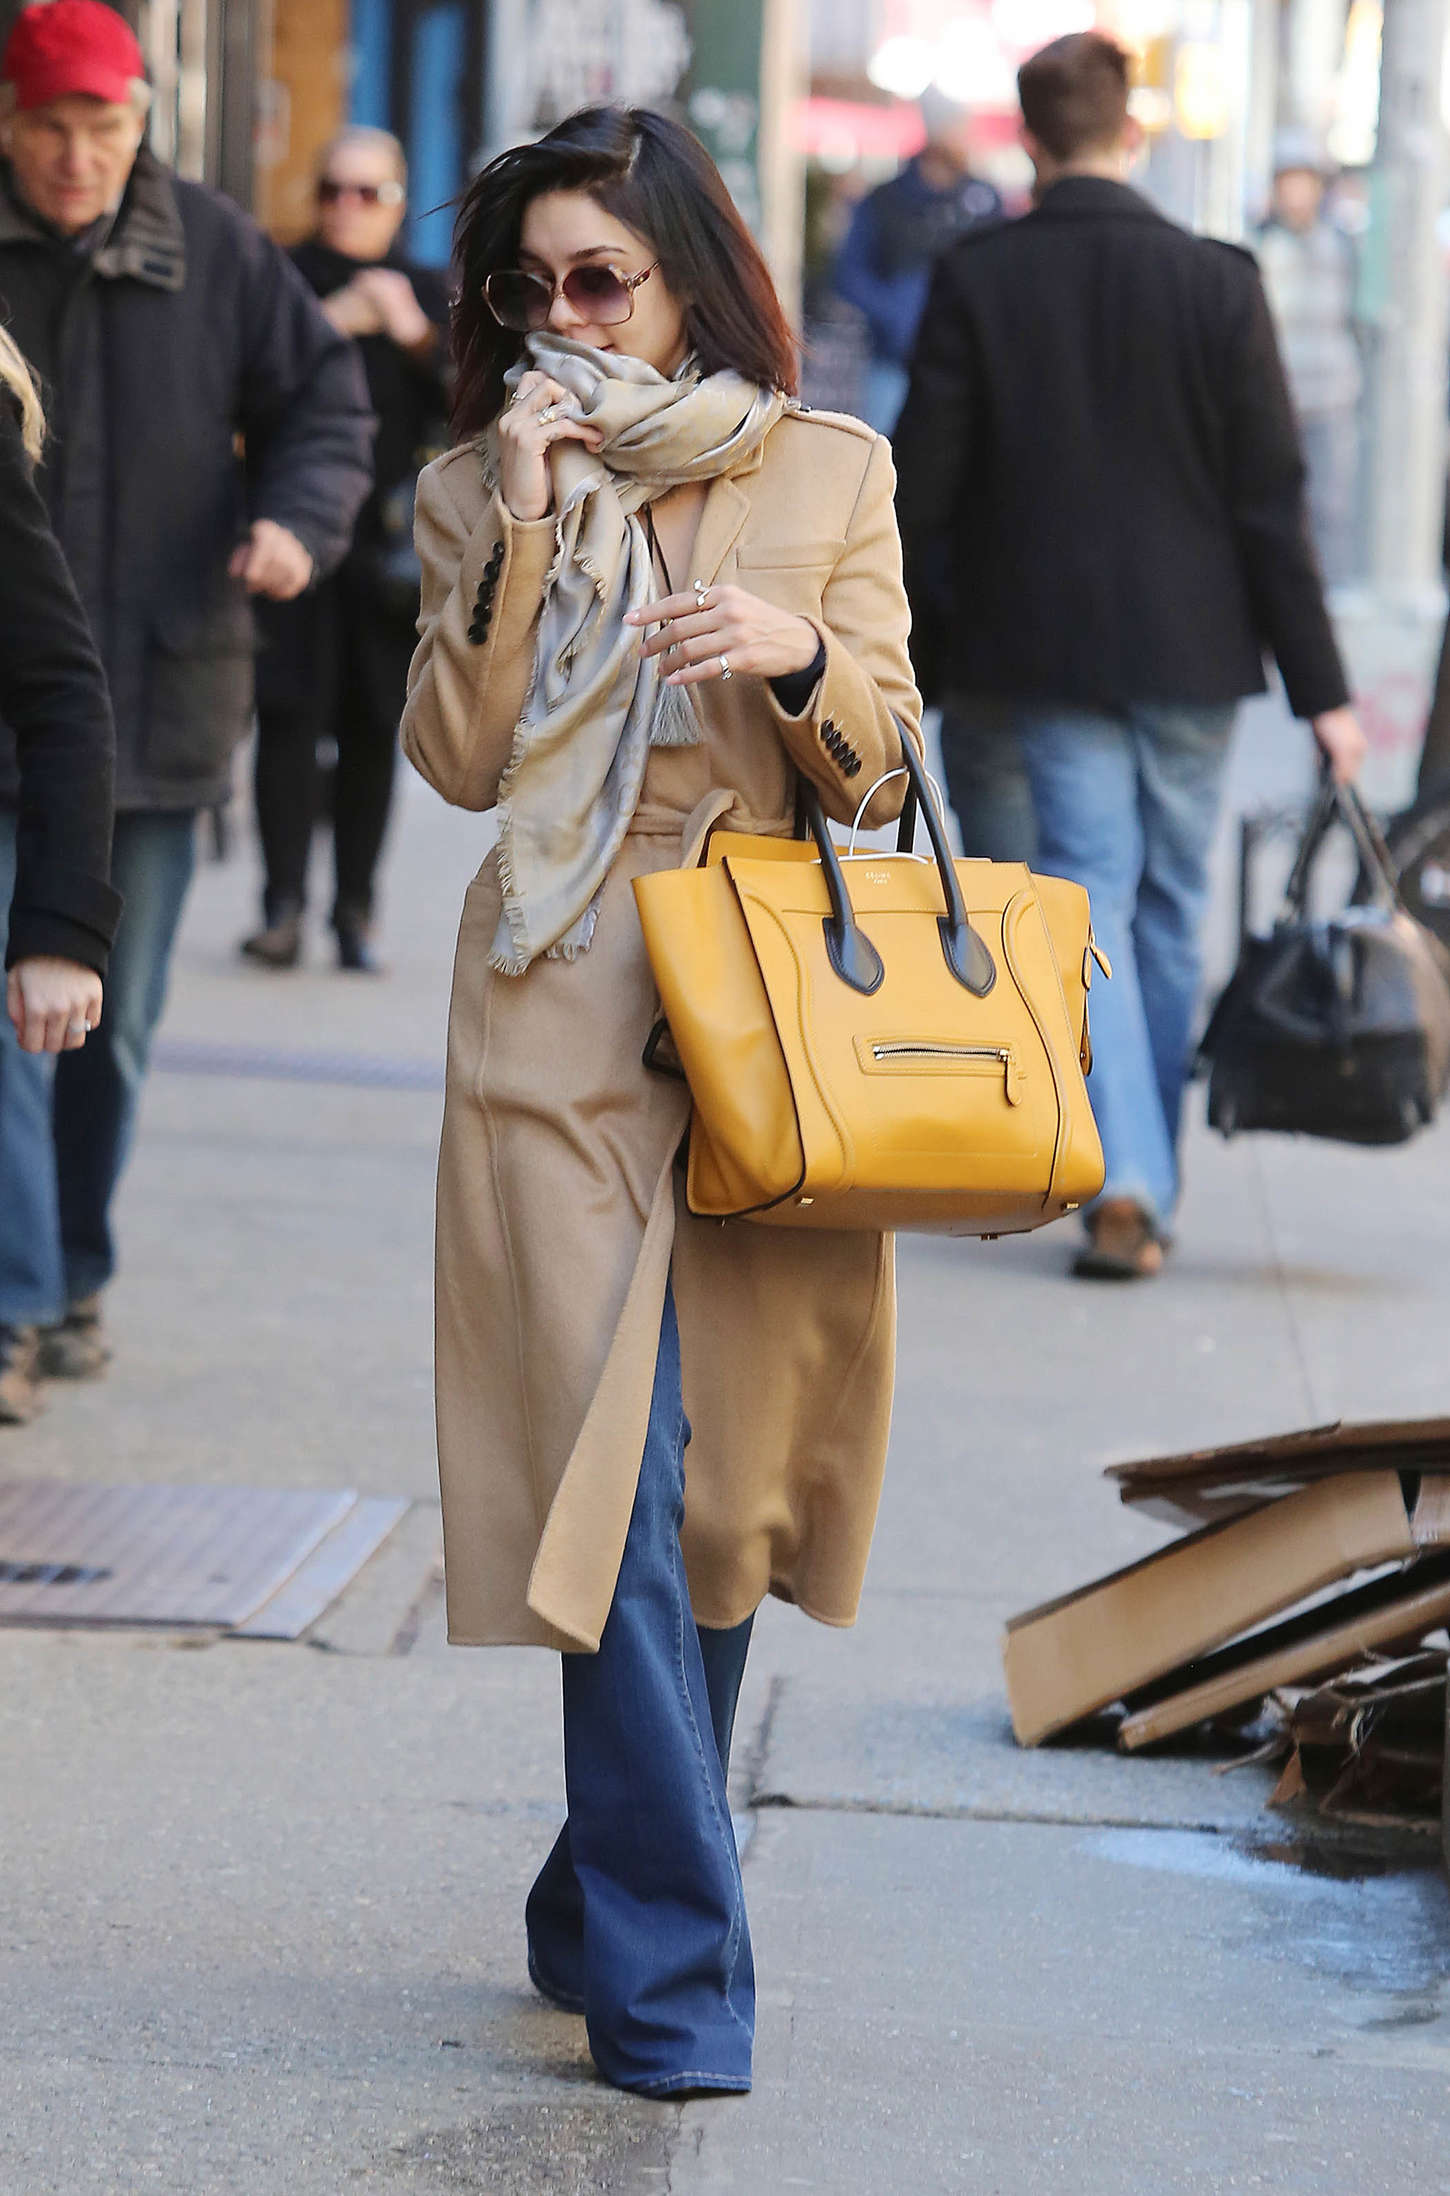 Vanessa Hudgens in Jeans and Coat Out in NYC